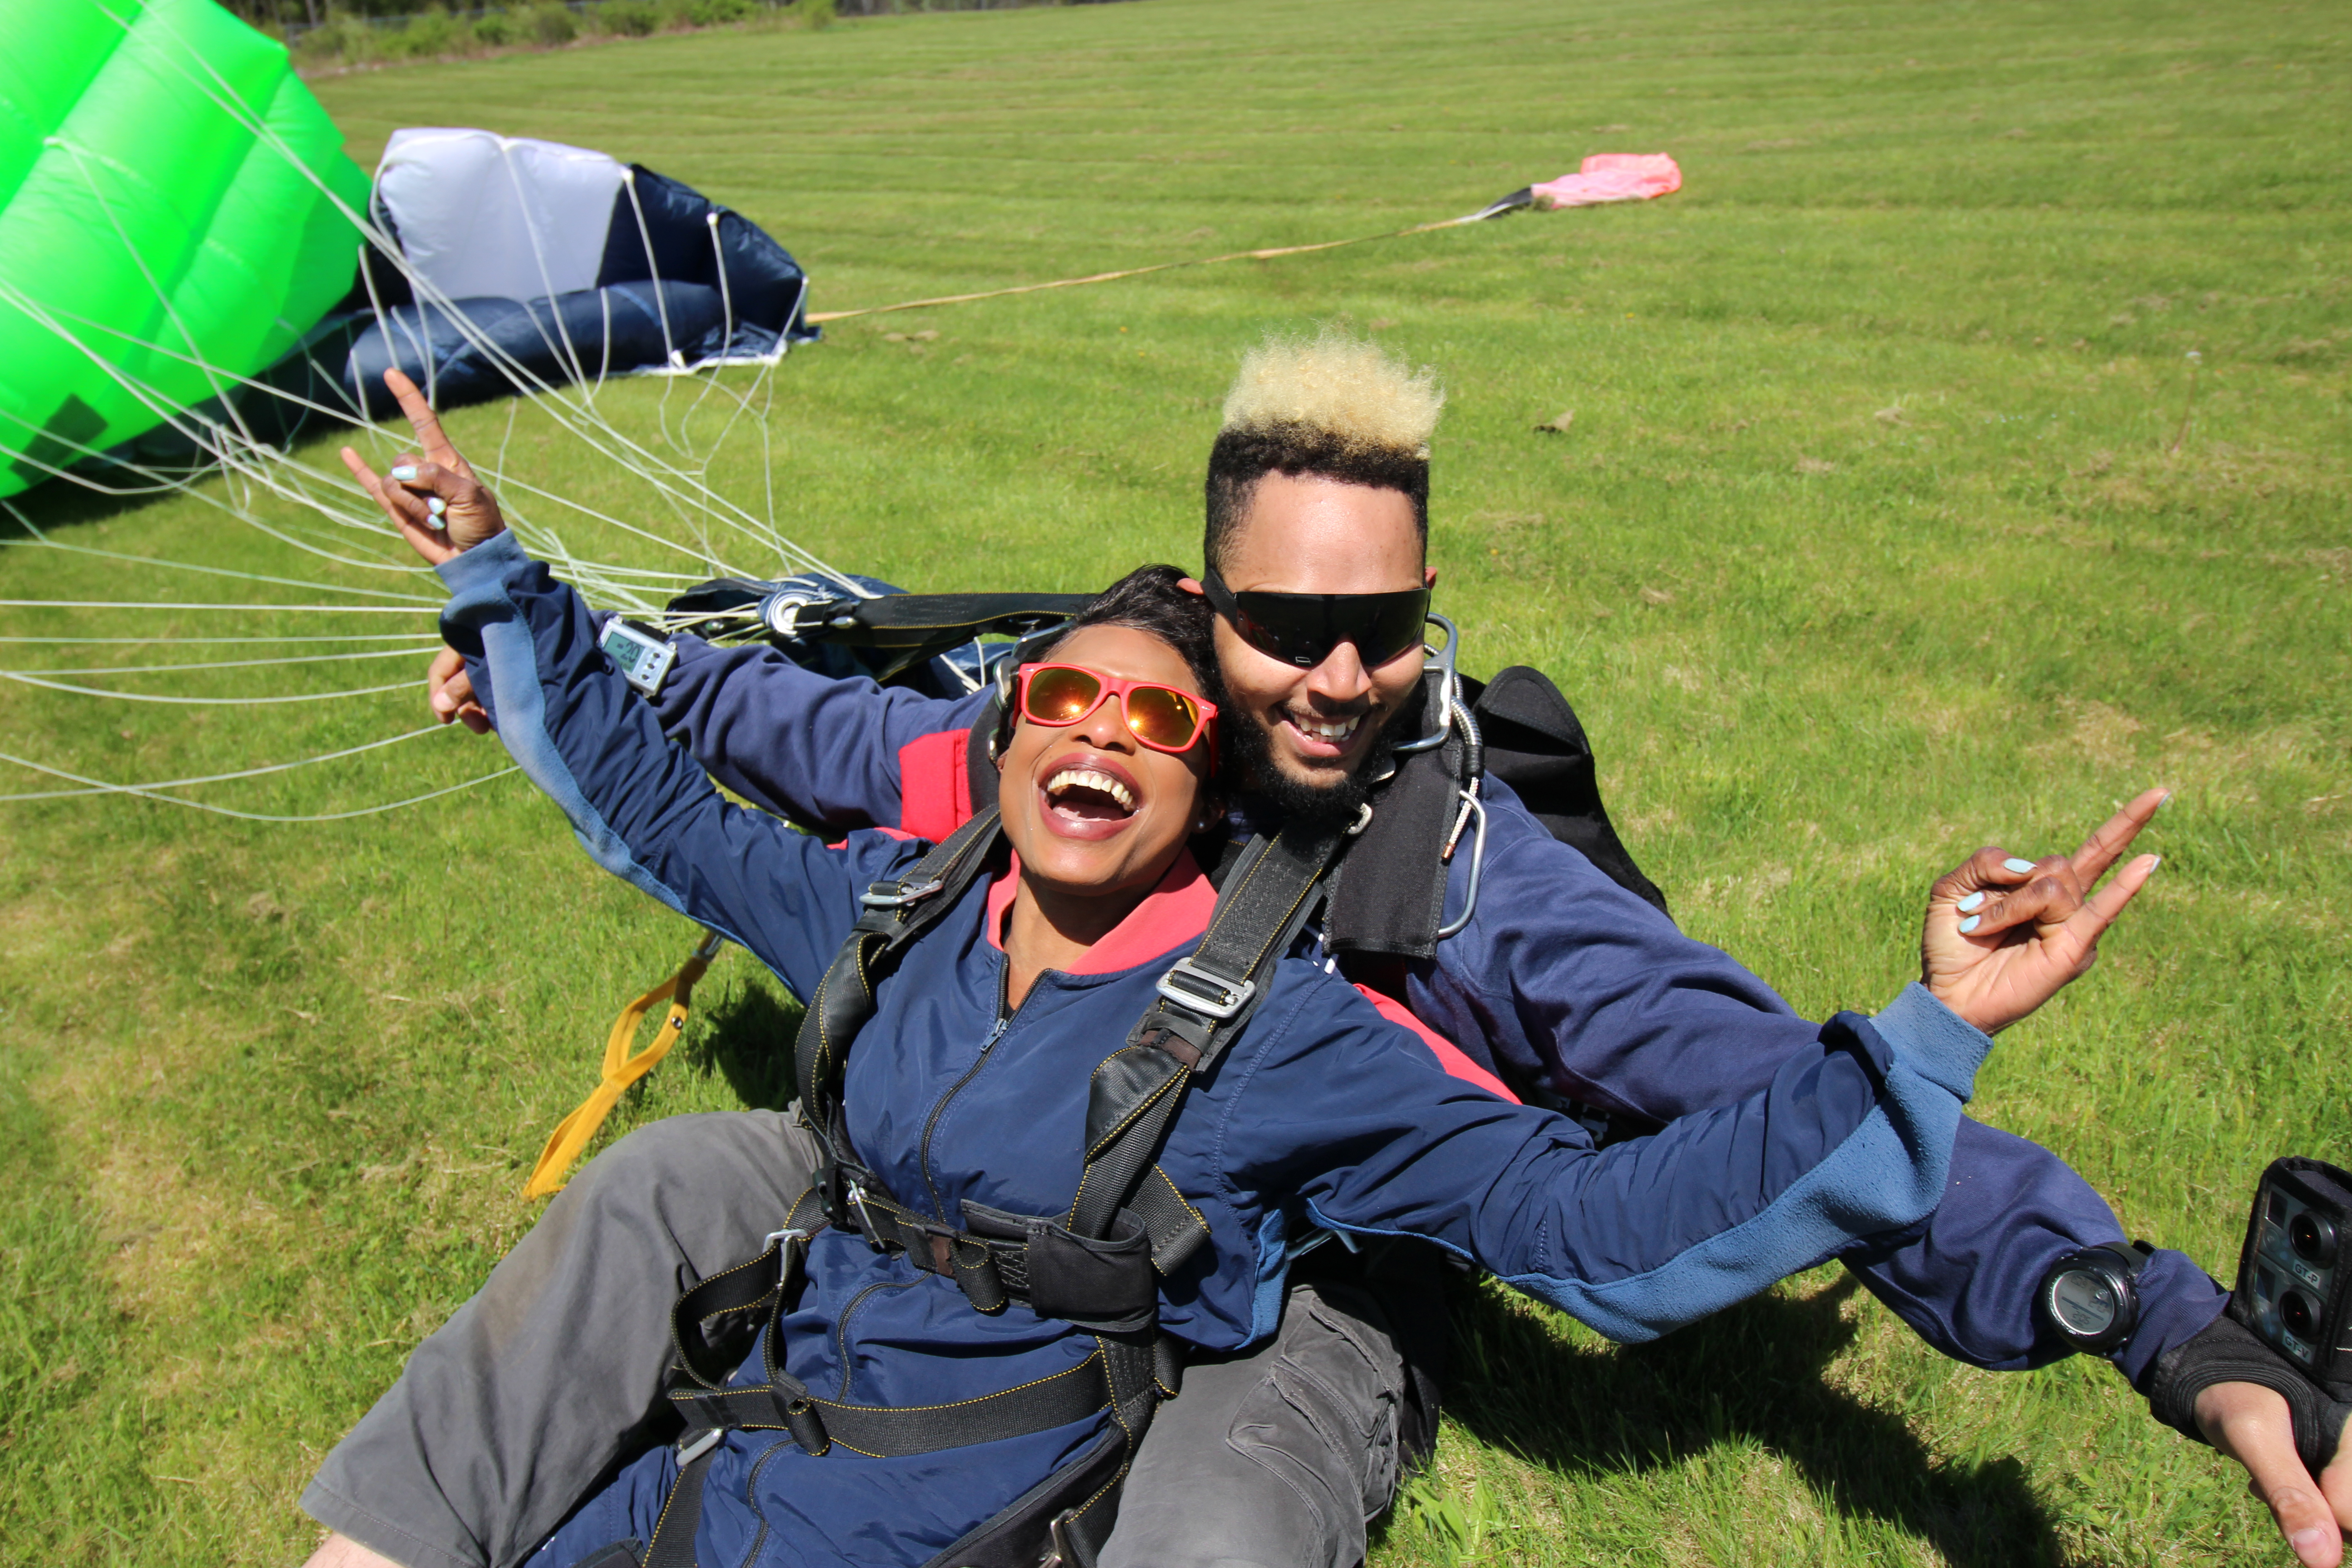 Three Things To Consider If You Want To Learn How To Skydive